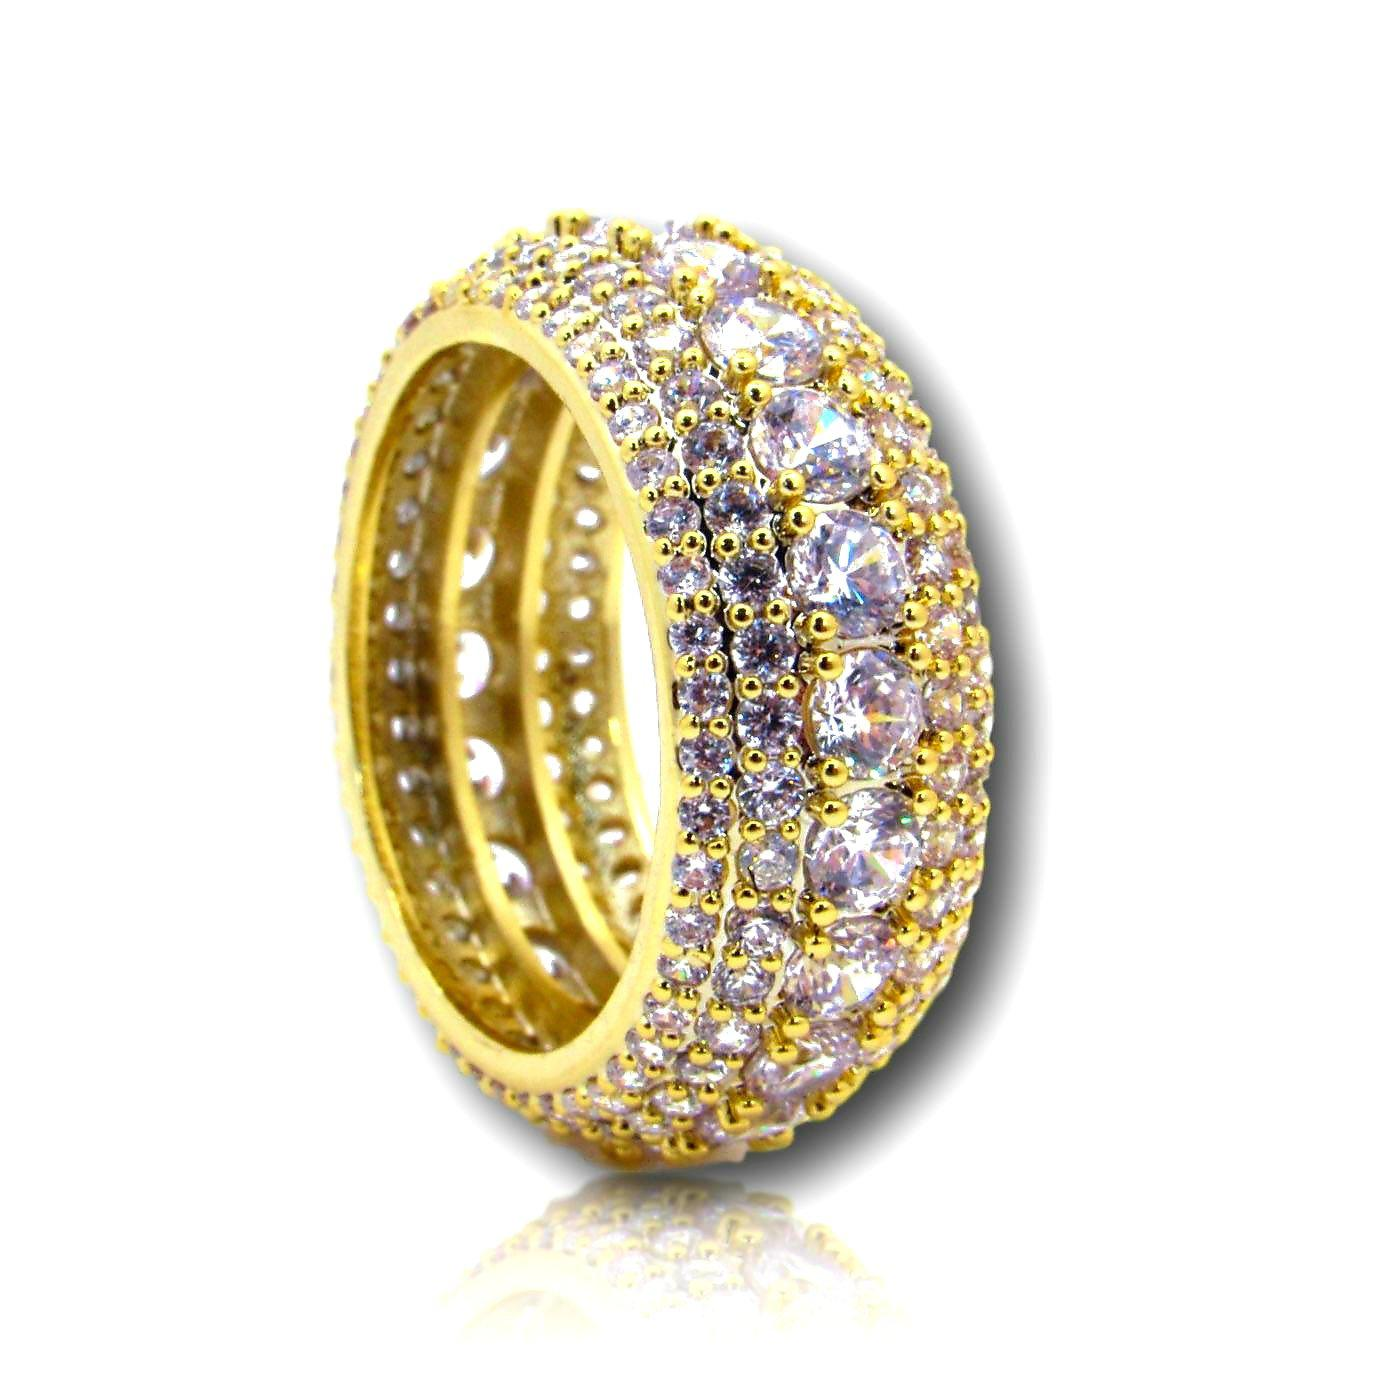 5 Layer Diamond Band Ring in Yellow Gold